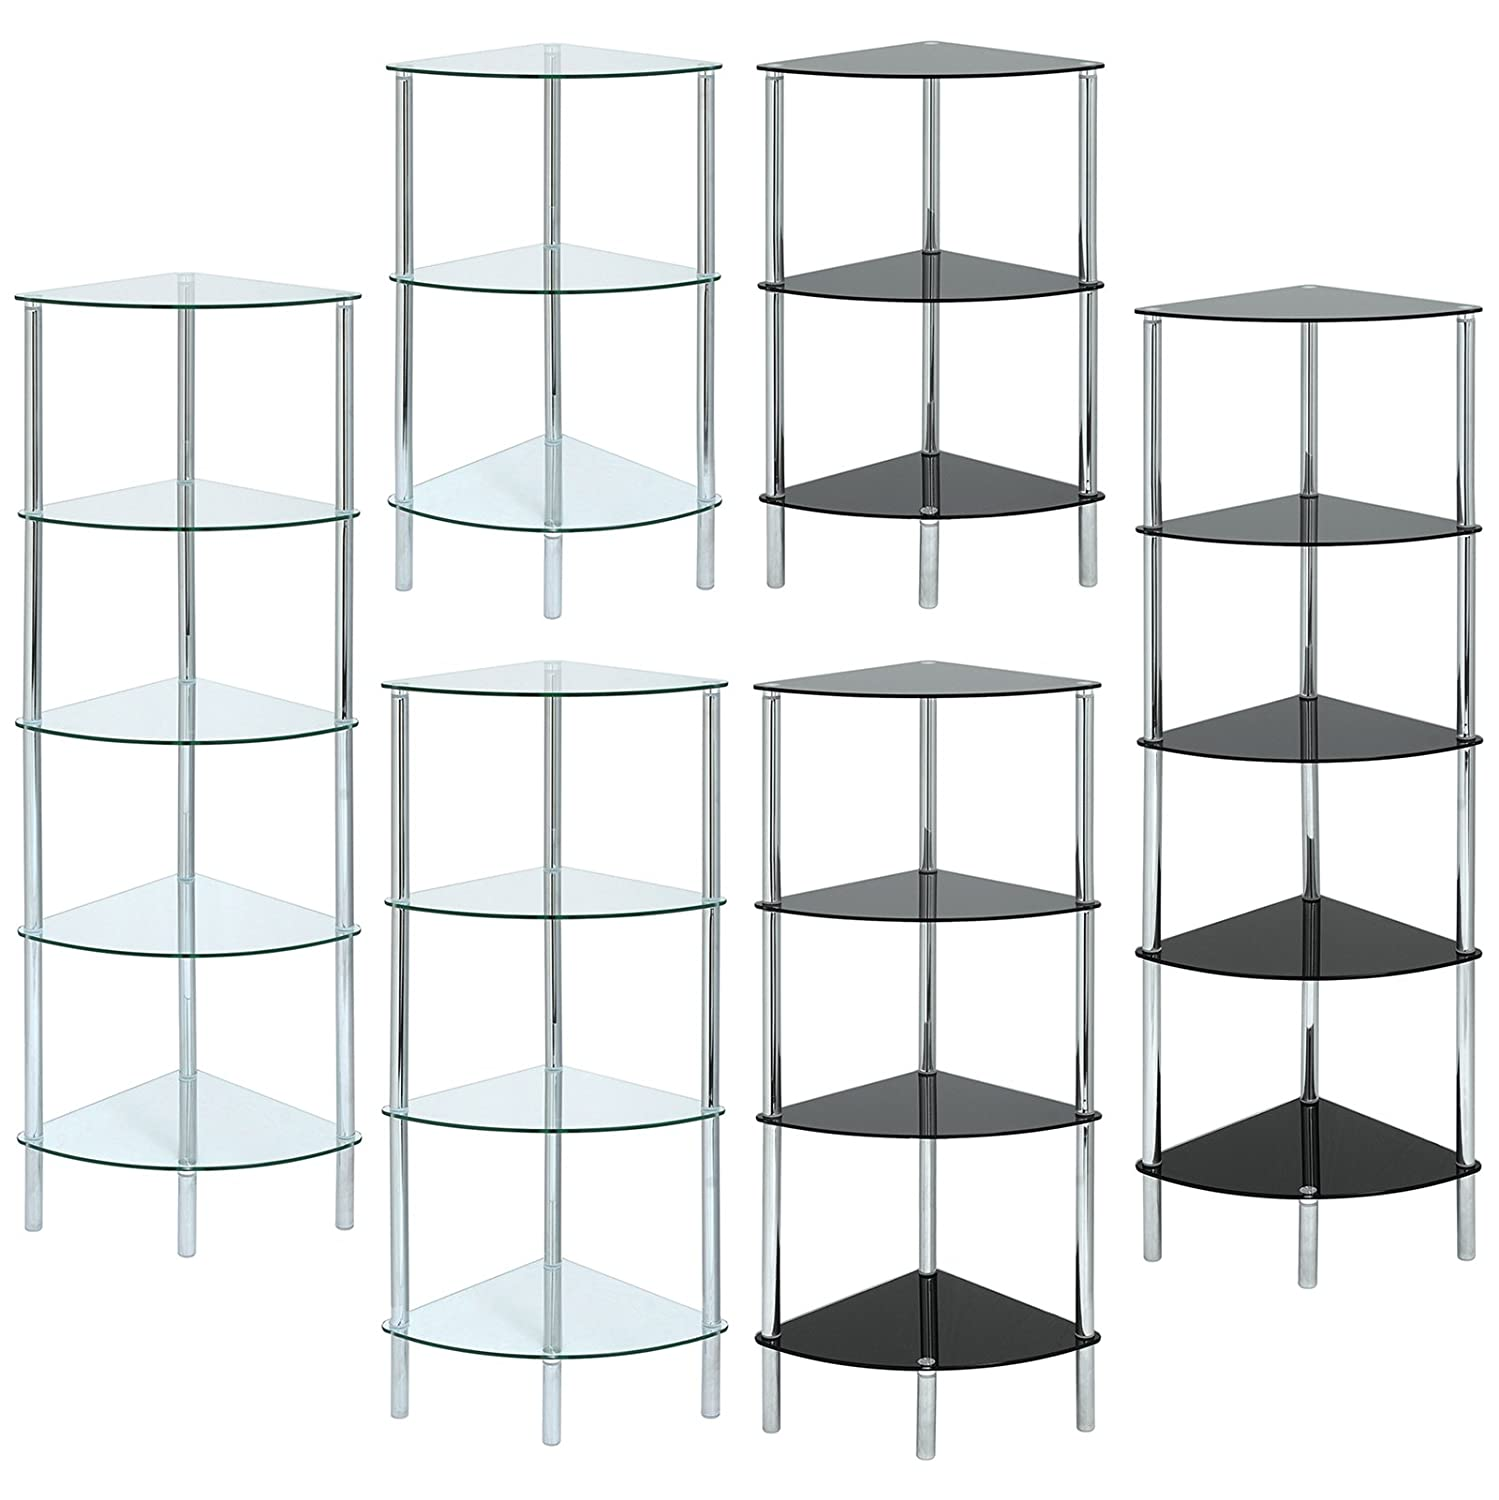 hartleys curved corner shelf unit available in black or clear glass amazoncouk kitchen u0026 home